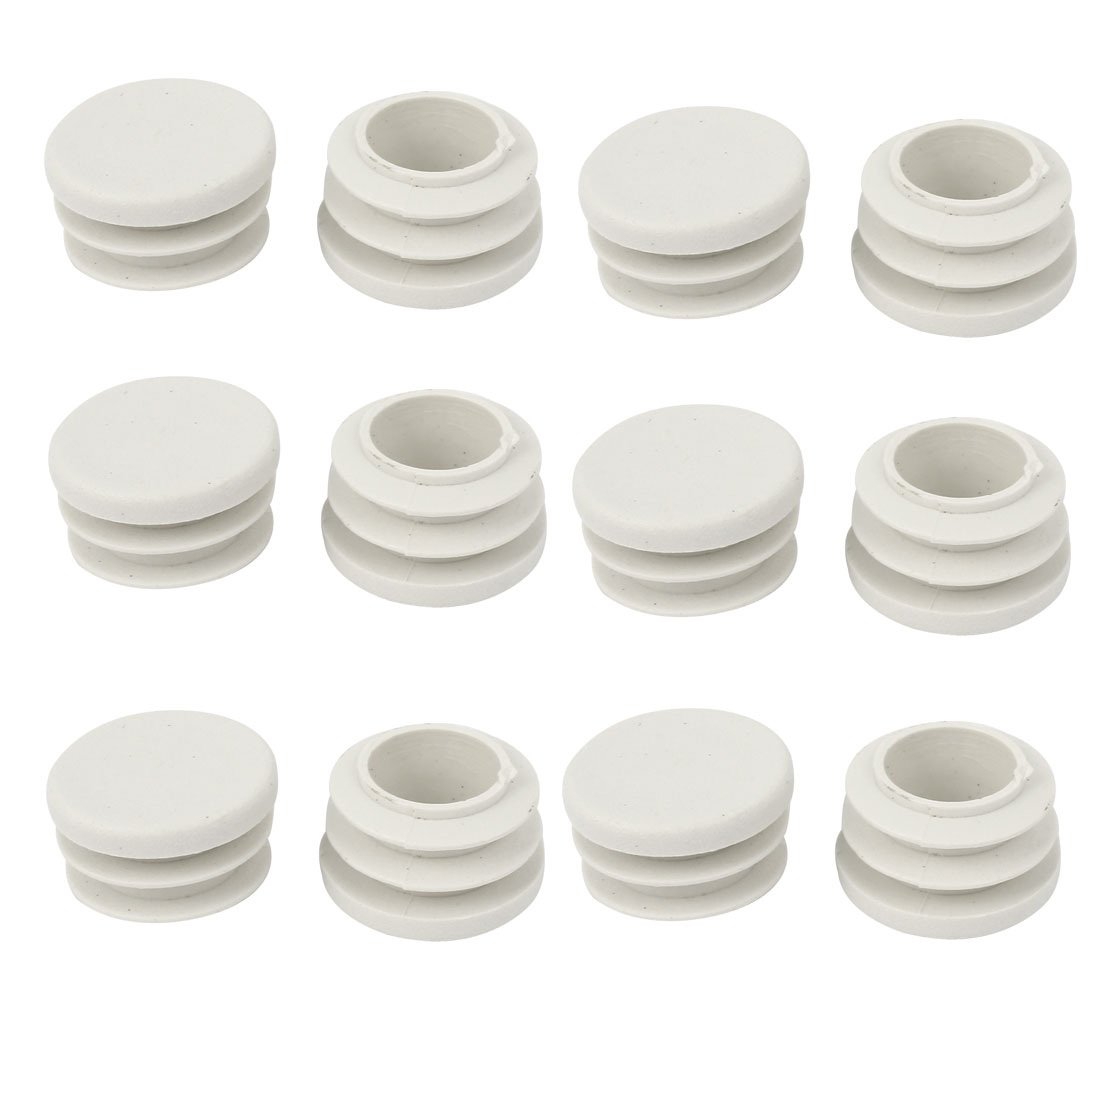 19mm Dia White Plastic Blanking End Cap Caps Tube Pipe Inserts Bung 12 Pcs